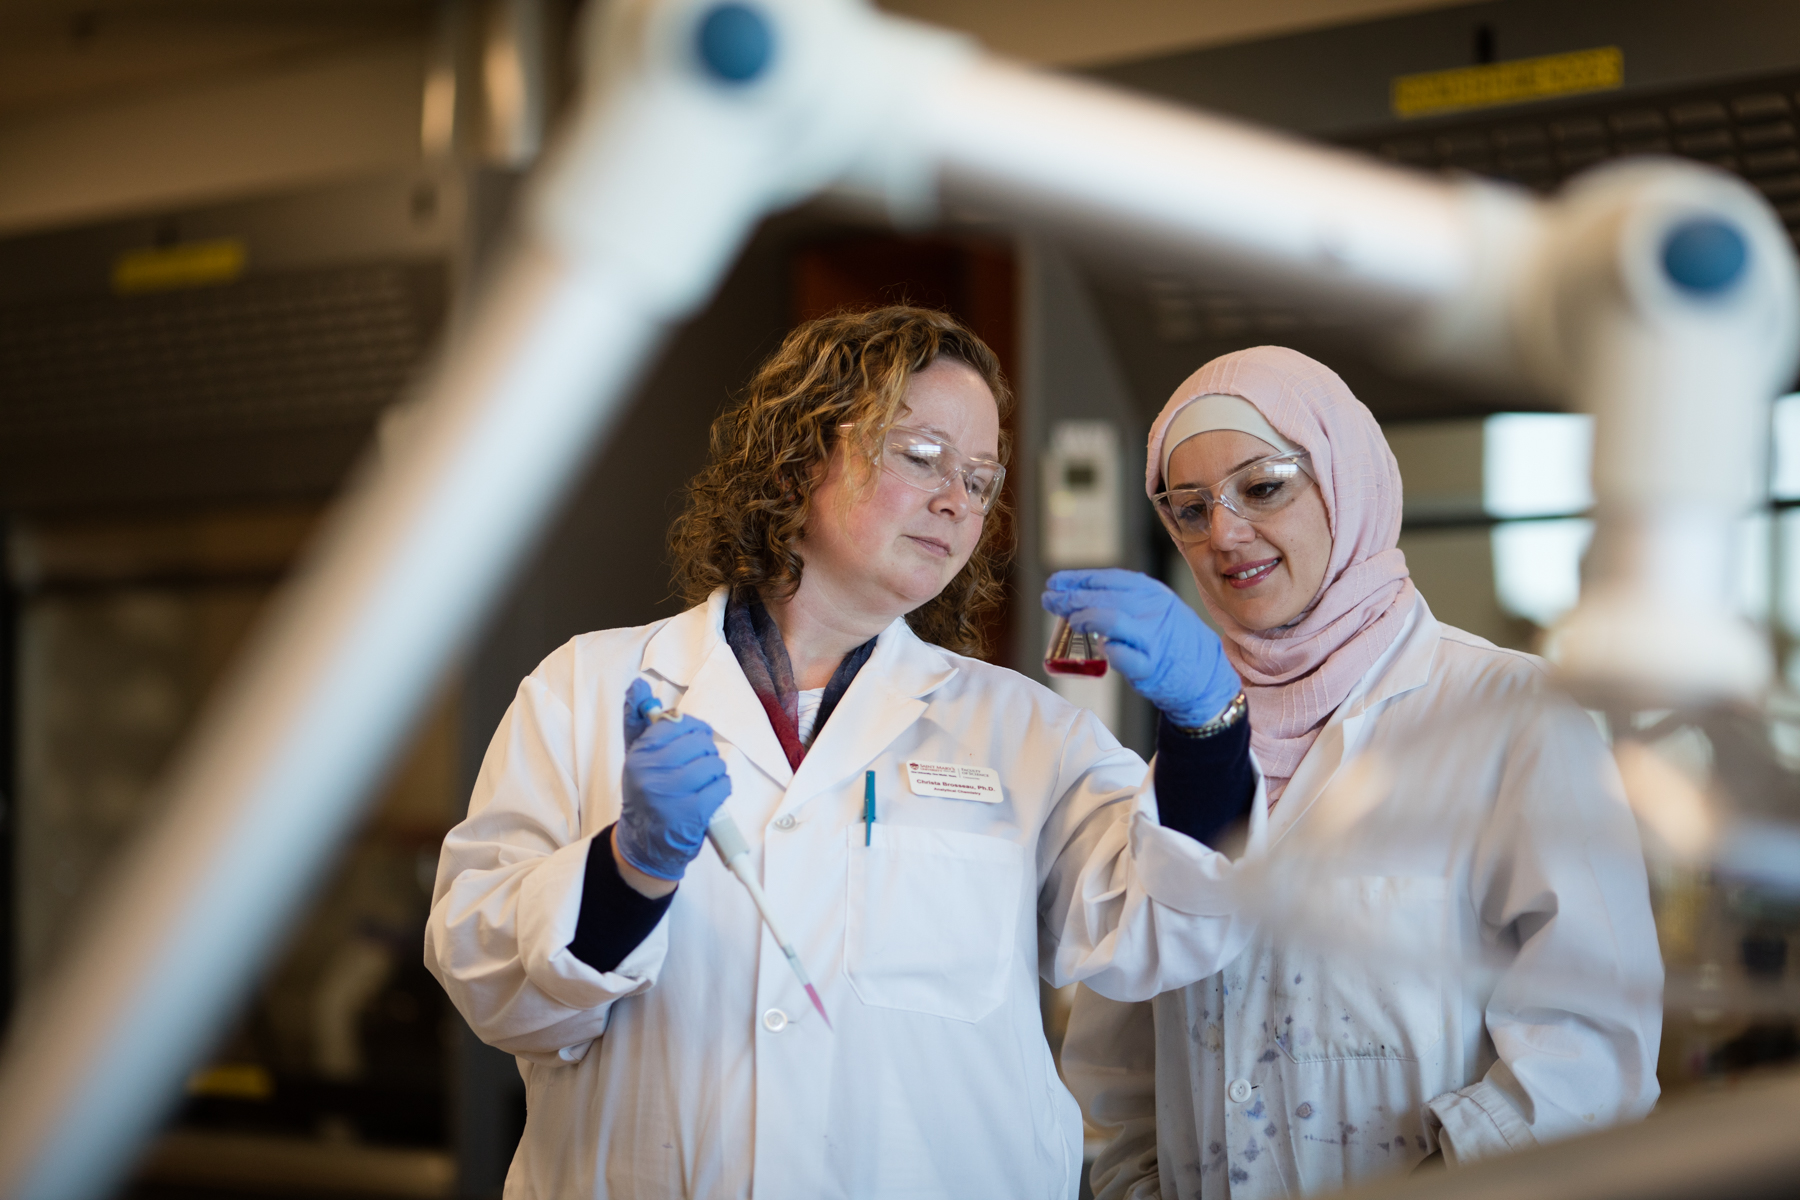 Saint Mary's professor Dr. Christa Brosseau, Canada Research Chair in Sustainable Chemistry & Materials works in the lab with Ph.D. student Najwan Albarghouthi.